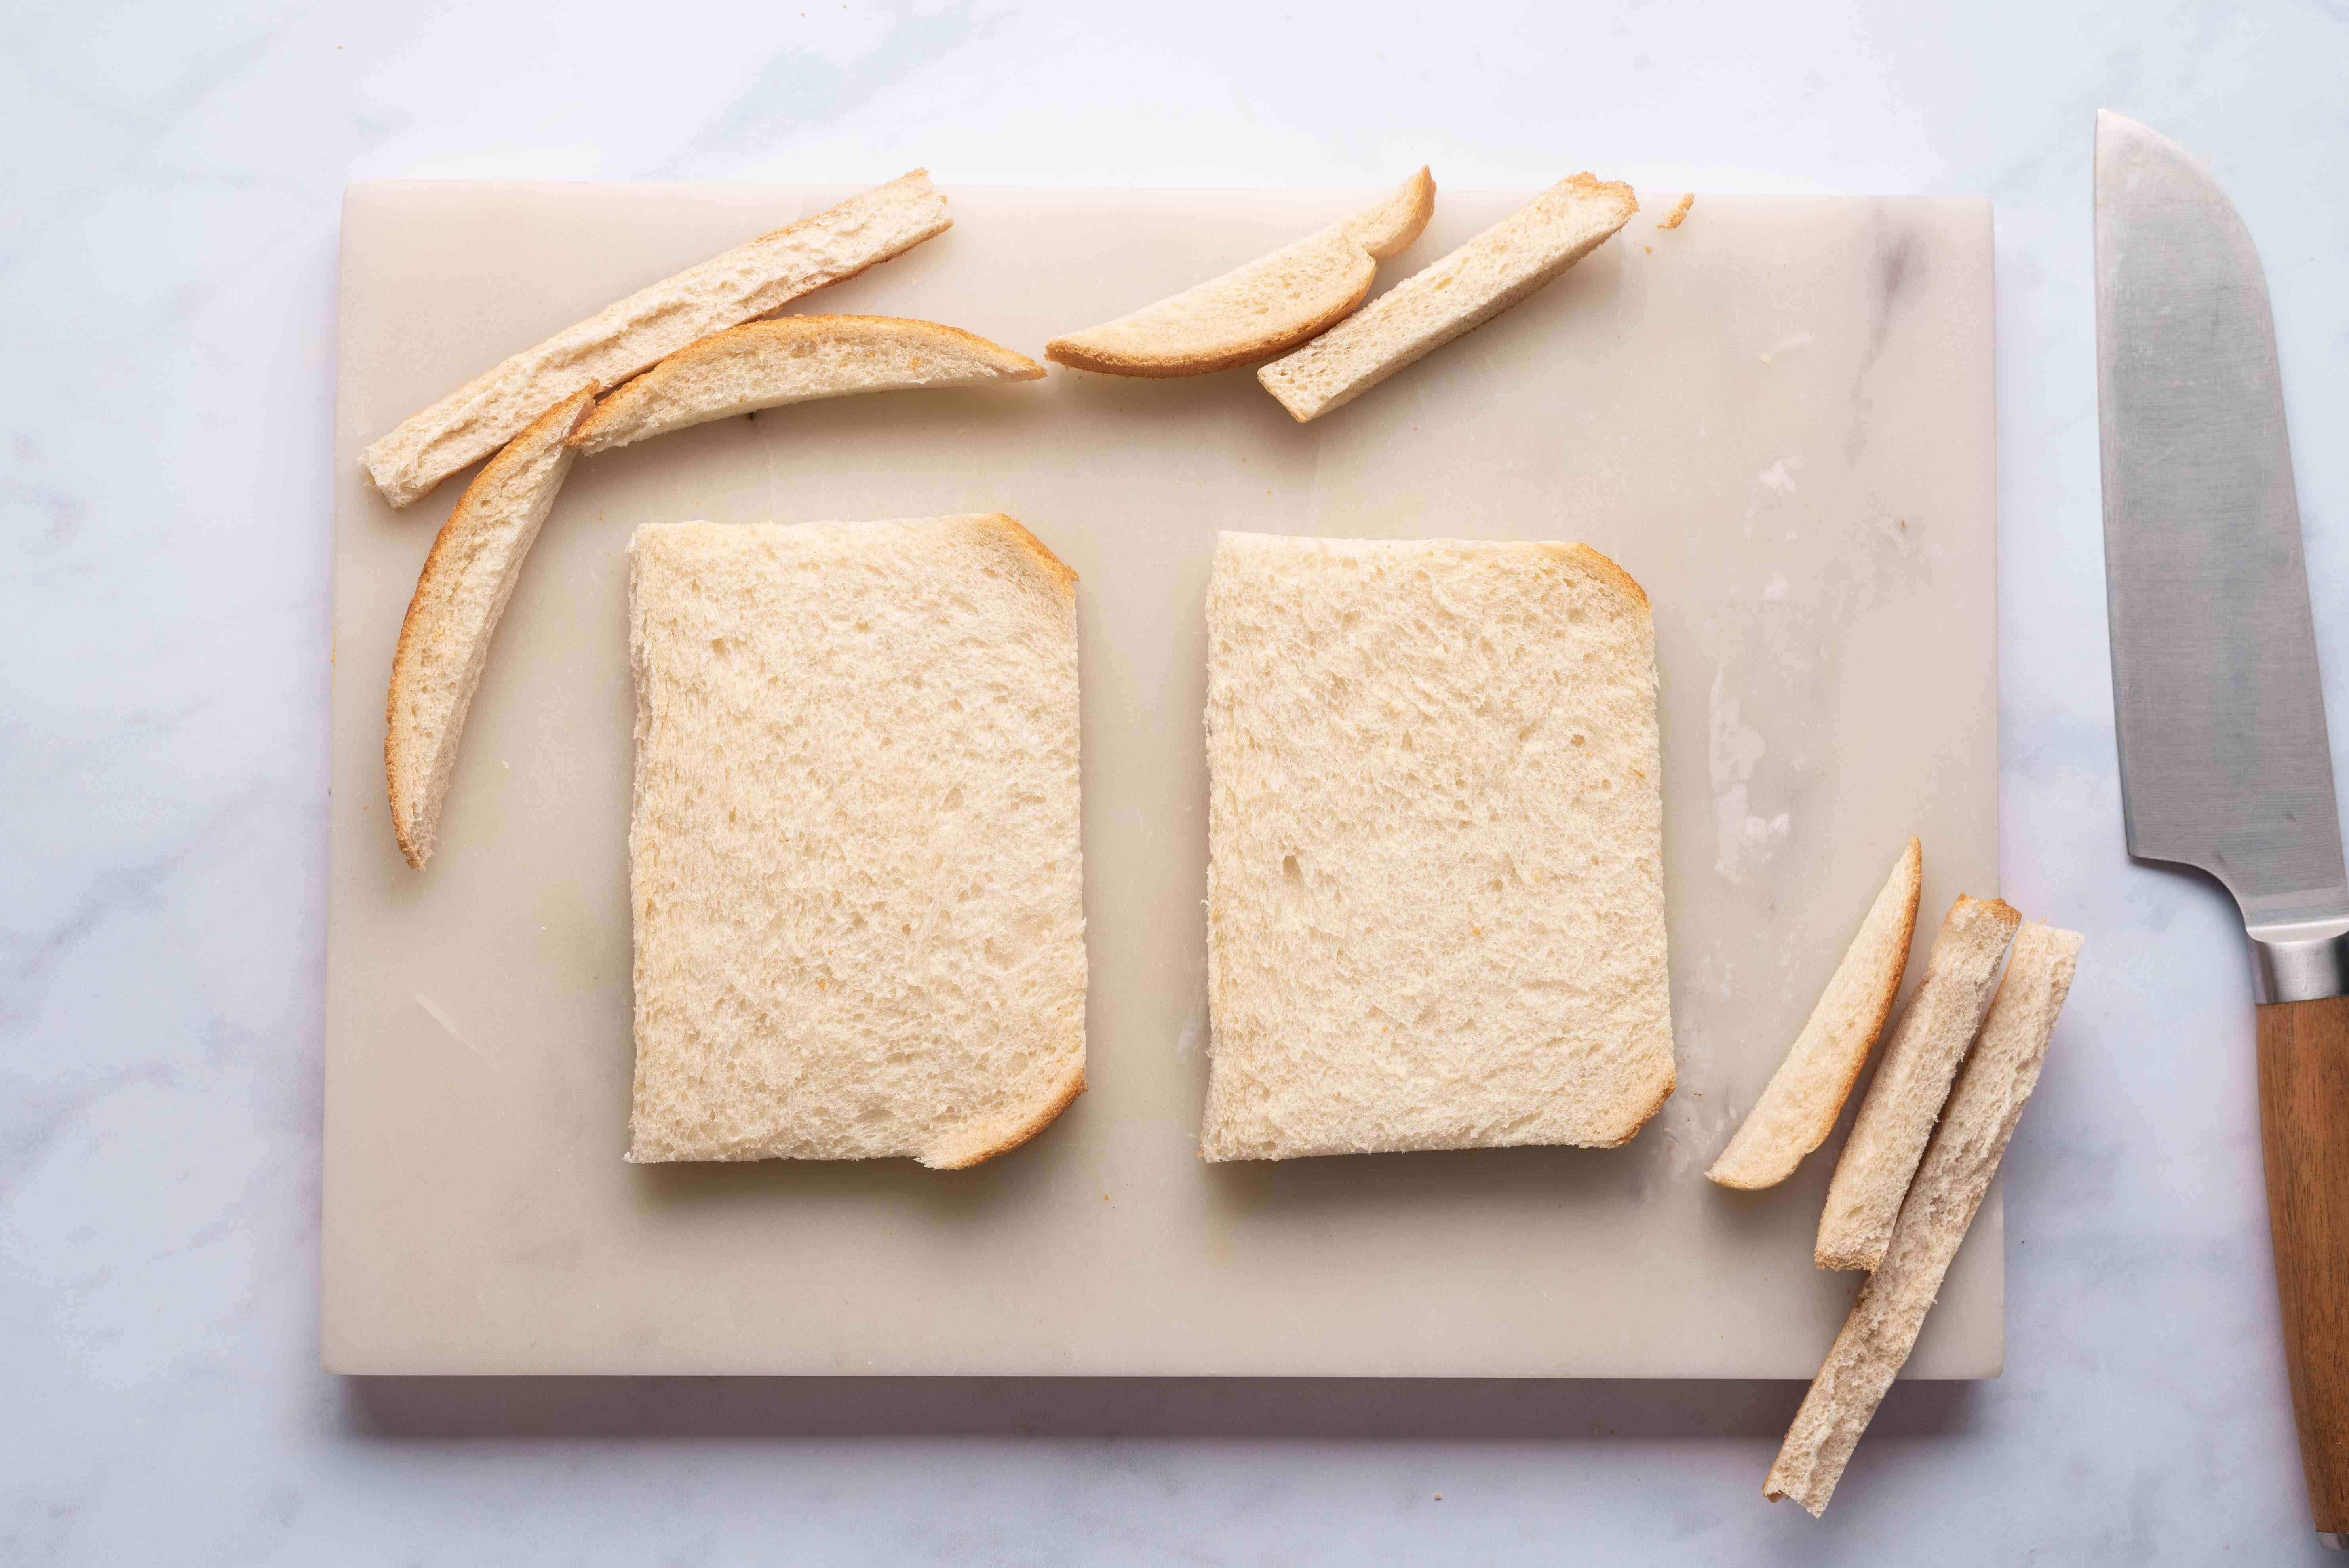 Trim the crusts off of the bread